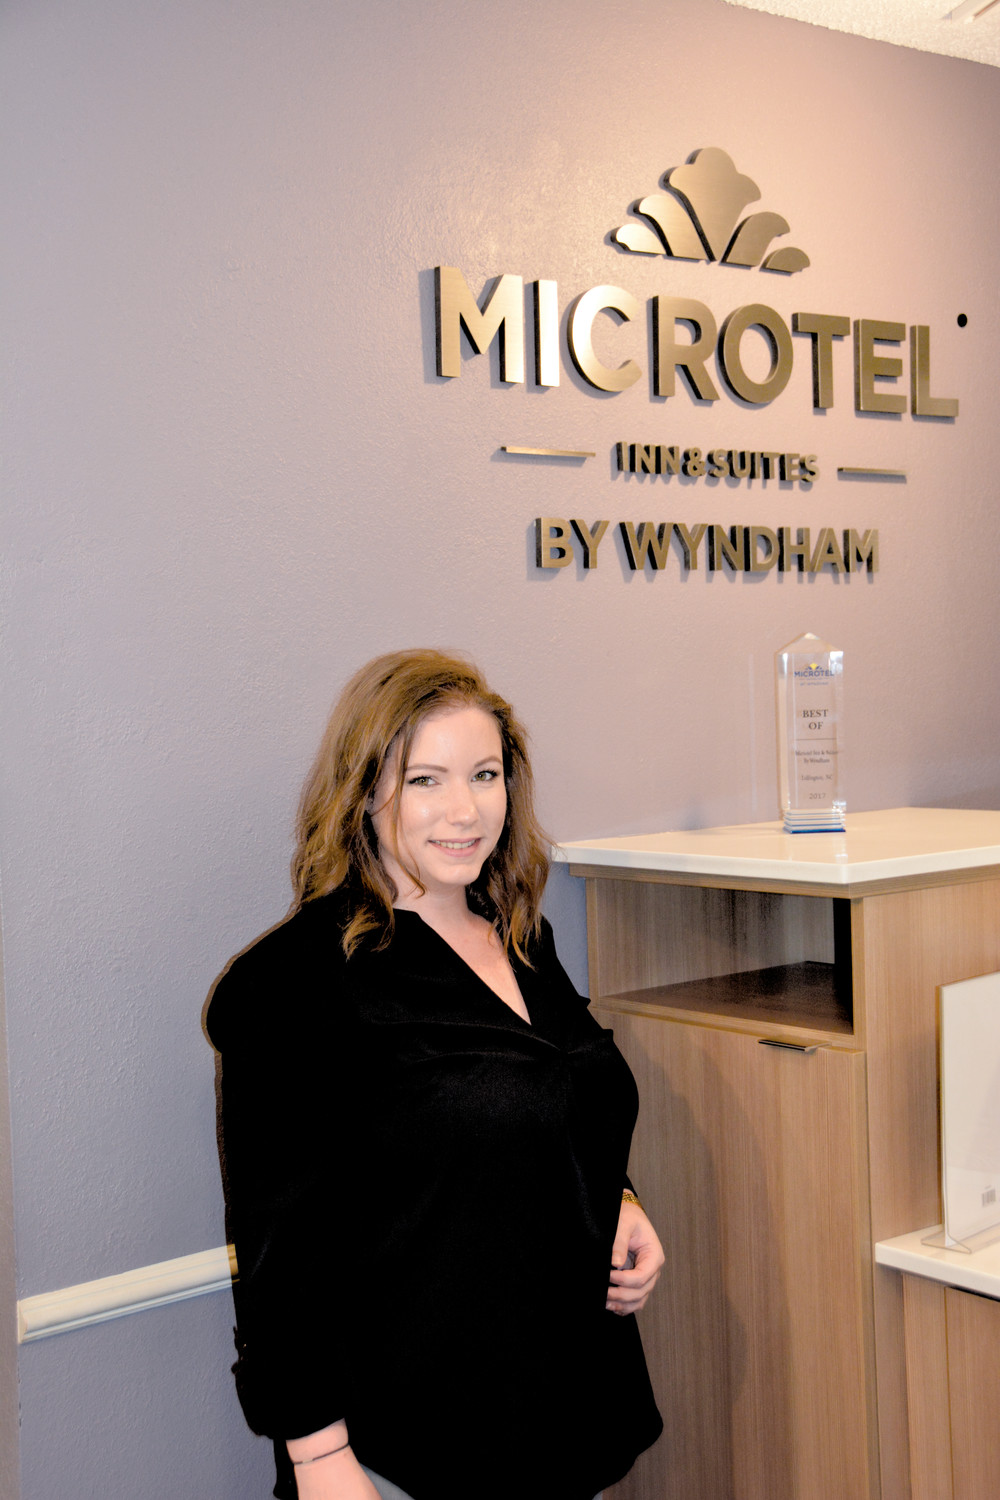 Best Of Microtel.Lillington Microtel Manager Sarah Tew is shown with the Best of Microtel award her company received. The Lillington location was the only motel in the chain to receive the award which is given for general excellence.